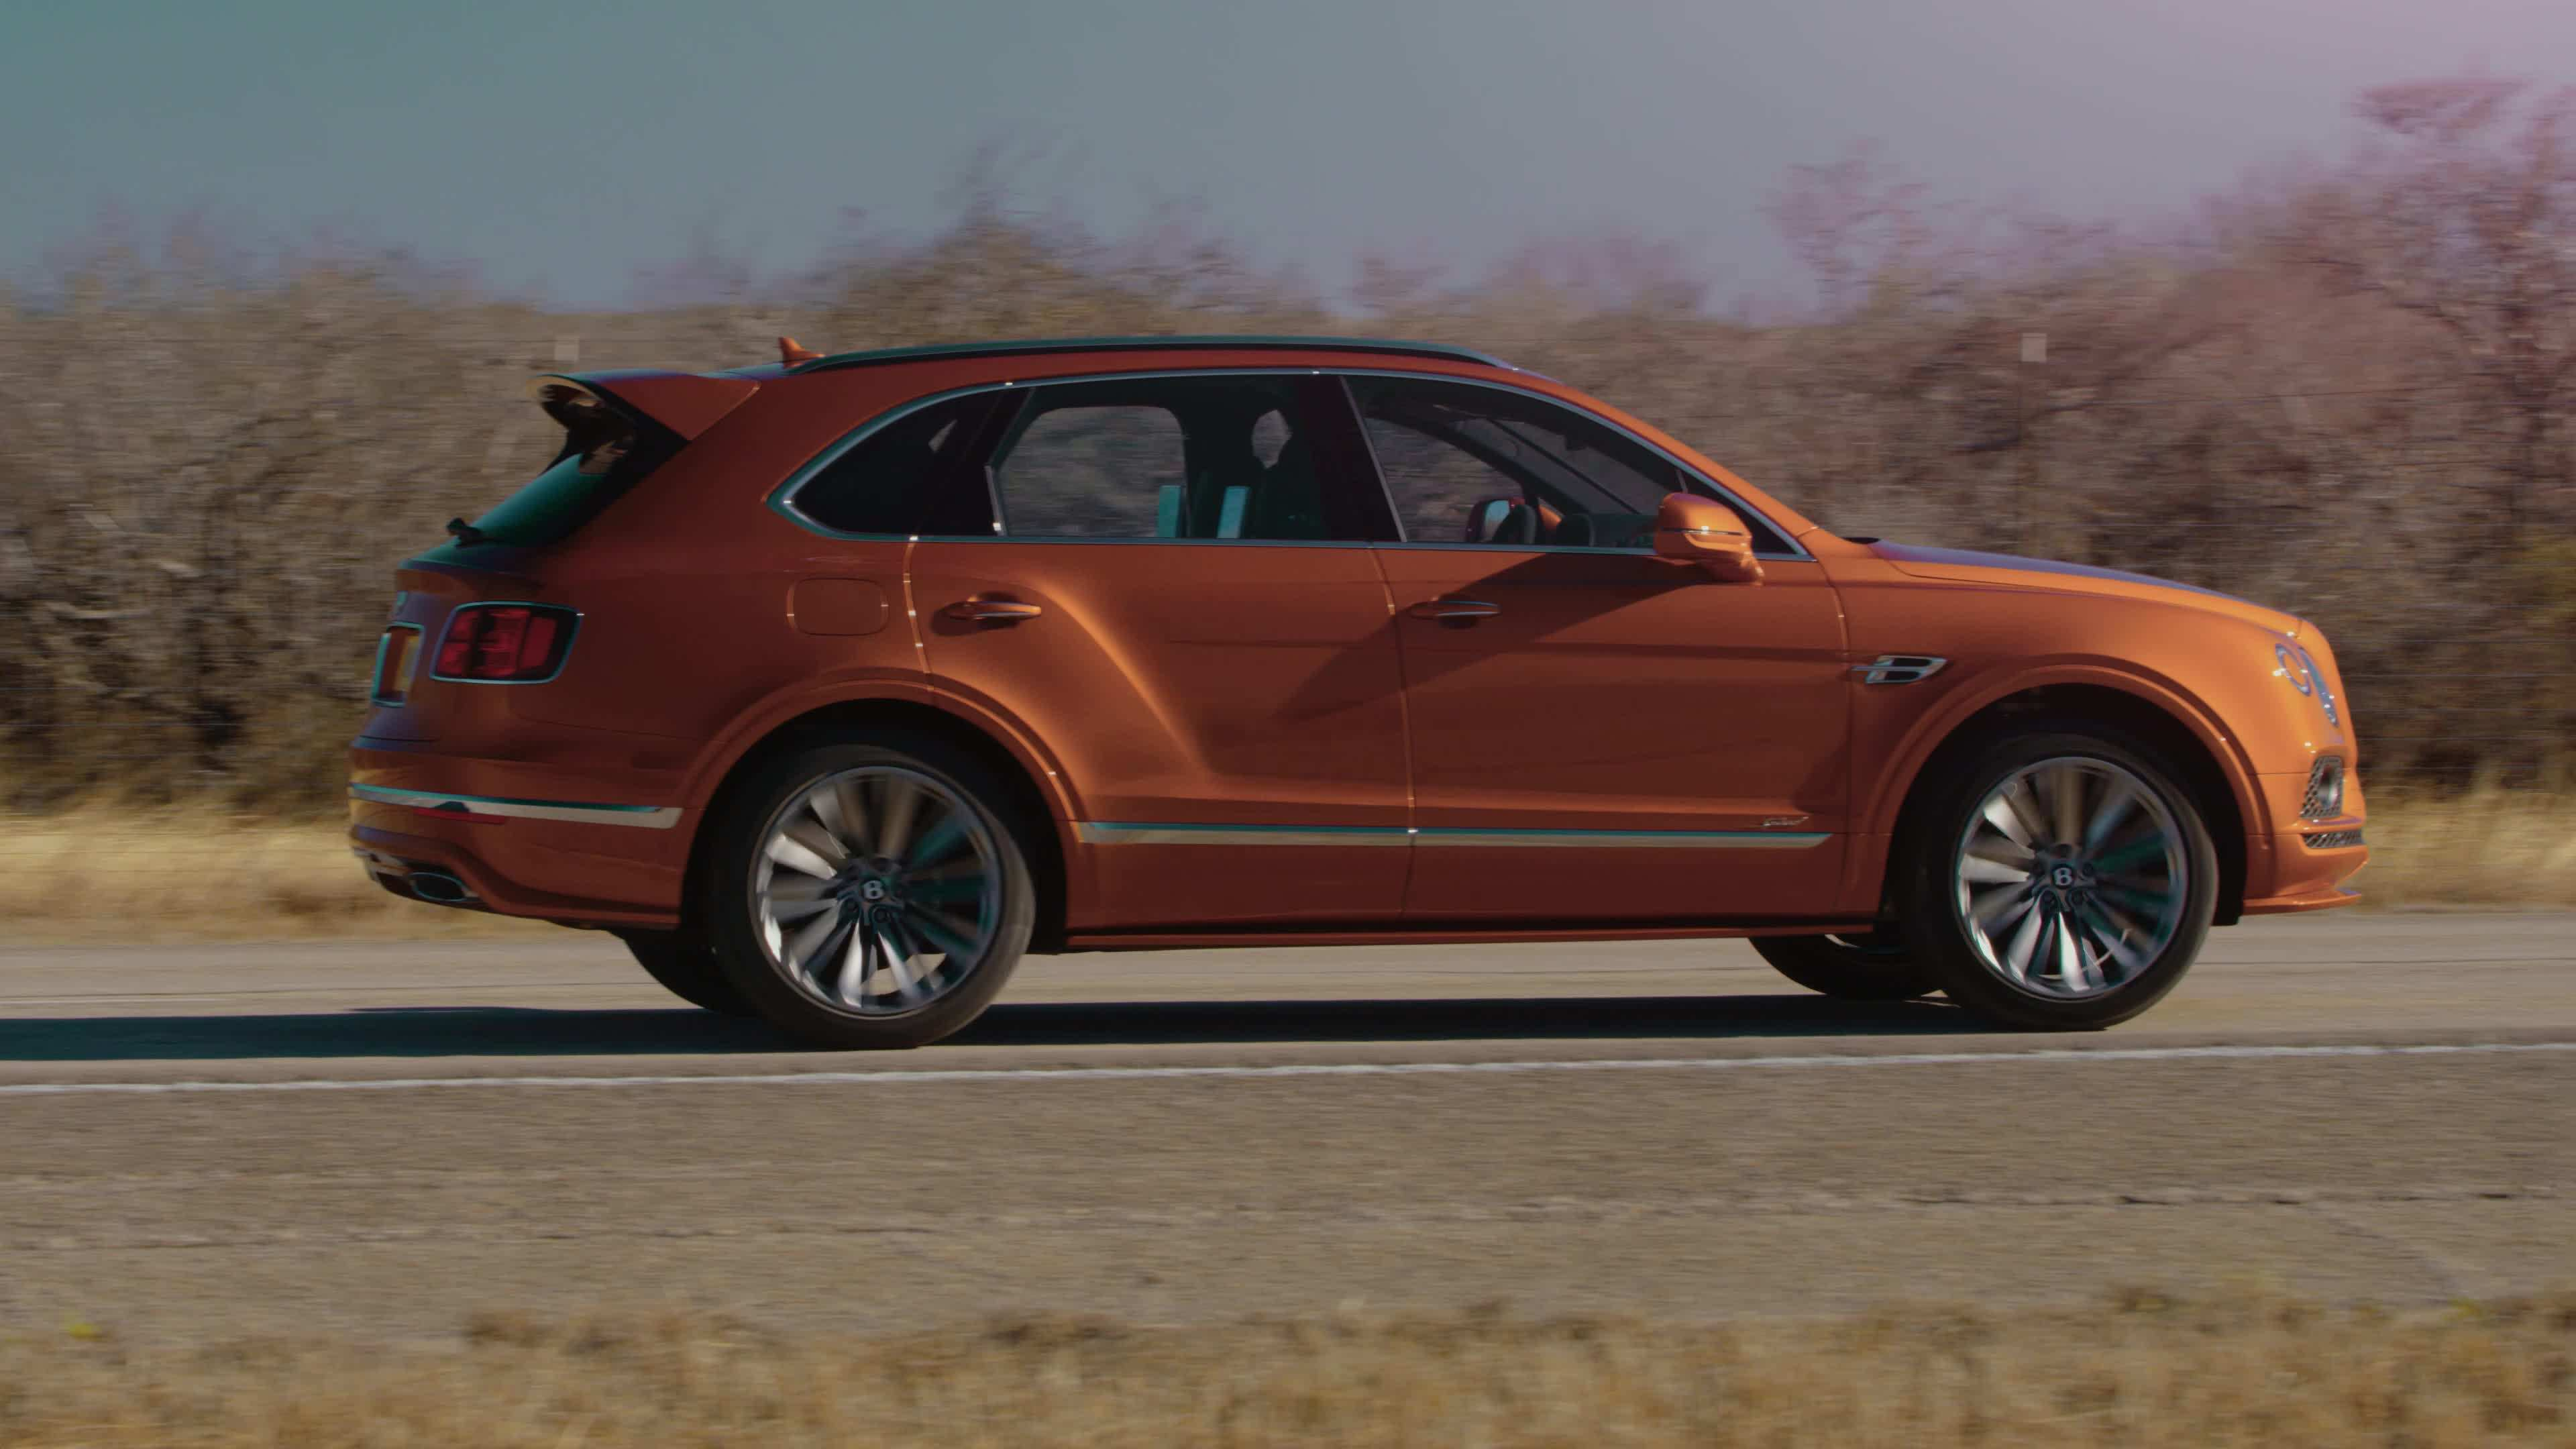 66 The Best 2020 Bentley Suv Prices